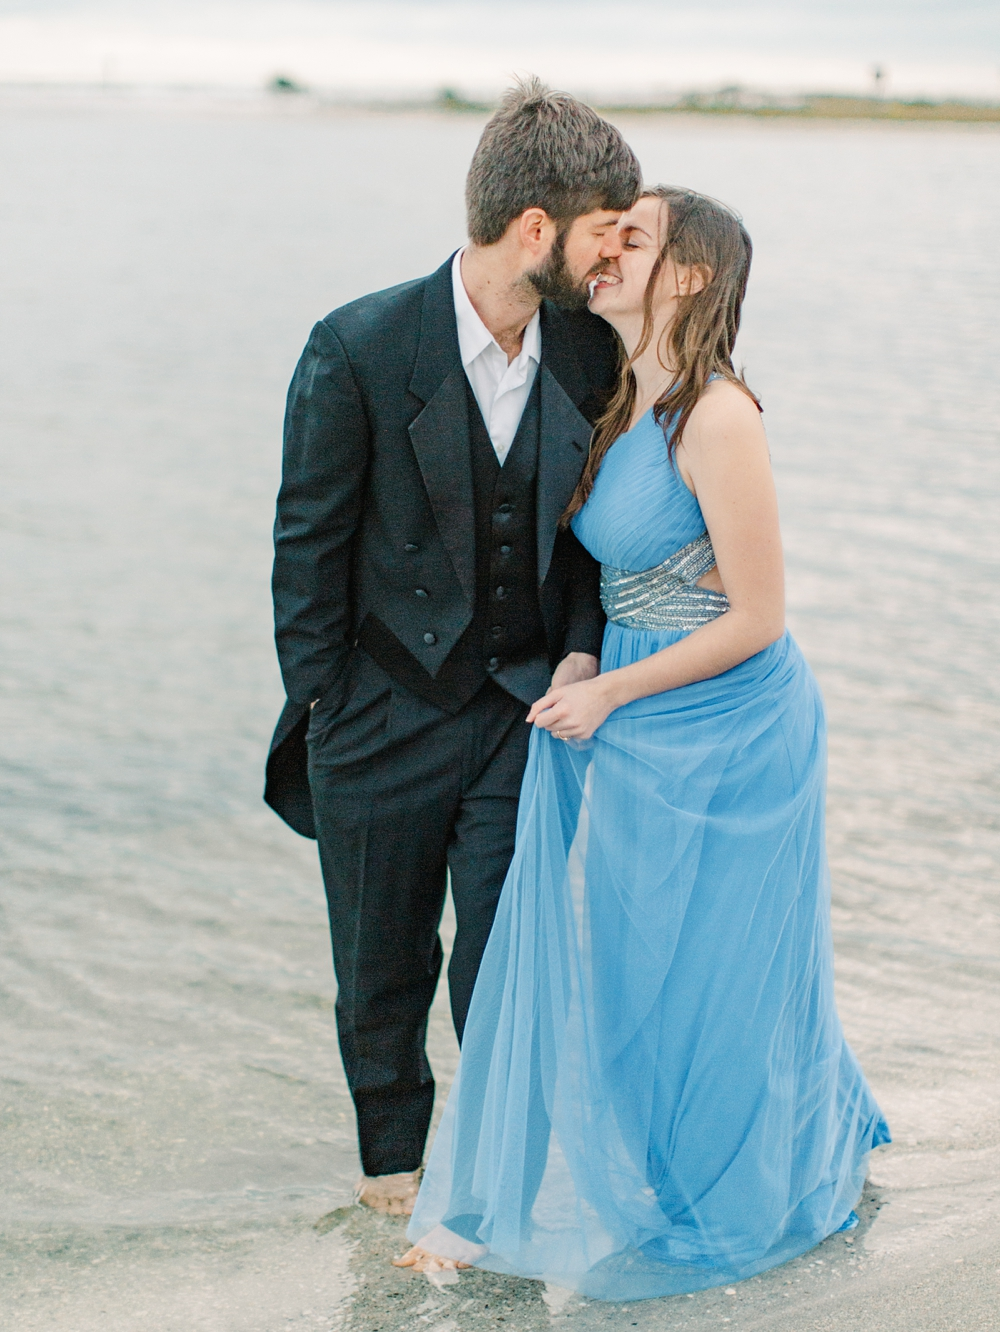 Anniversary Session | Fort De Soto | Timeless | Organic Imagery | Ashley Holstein Photography